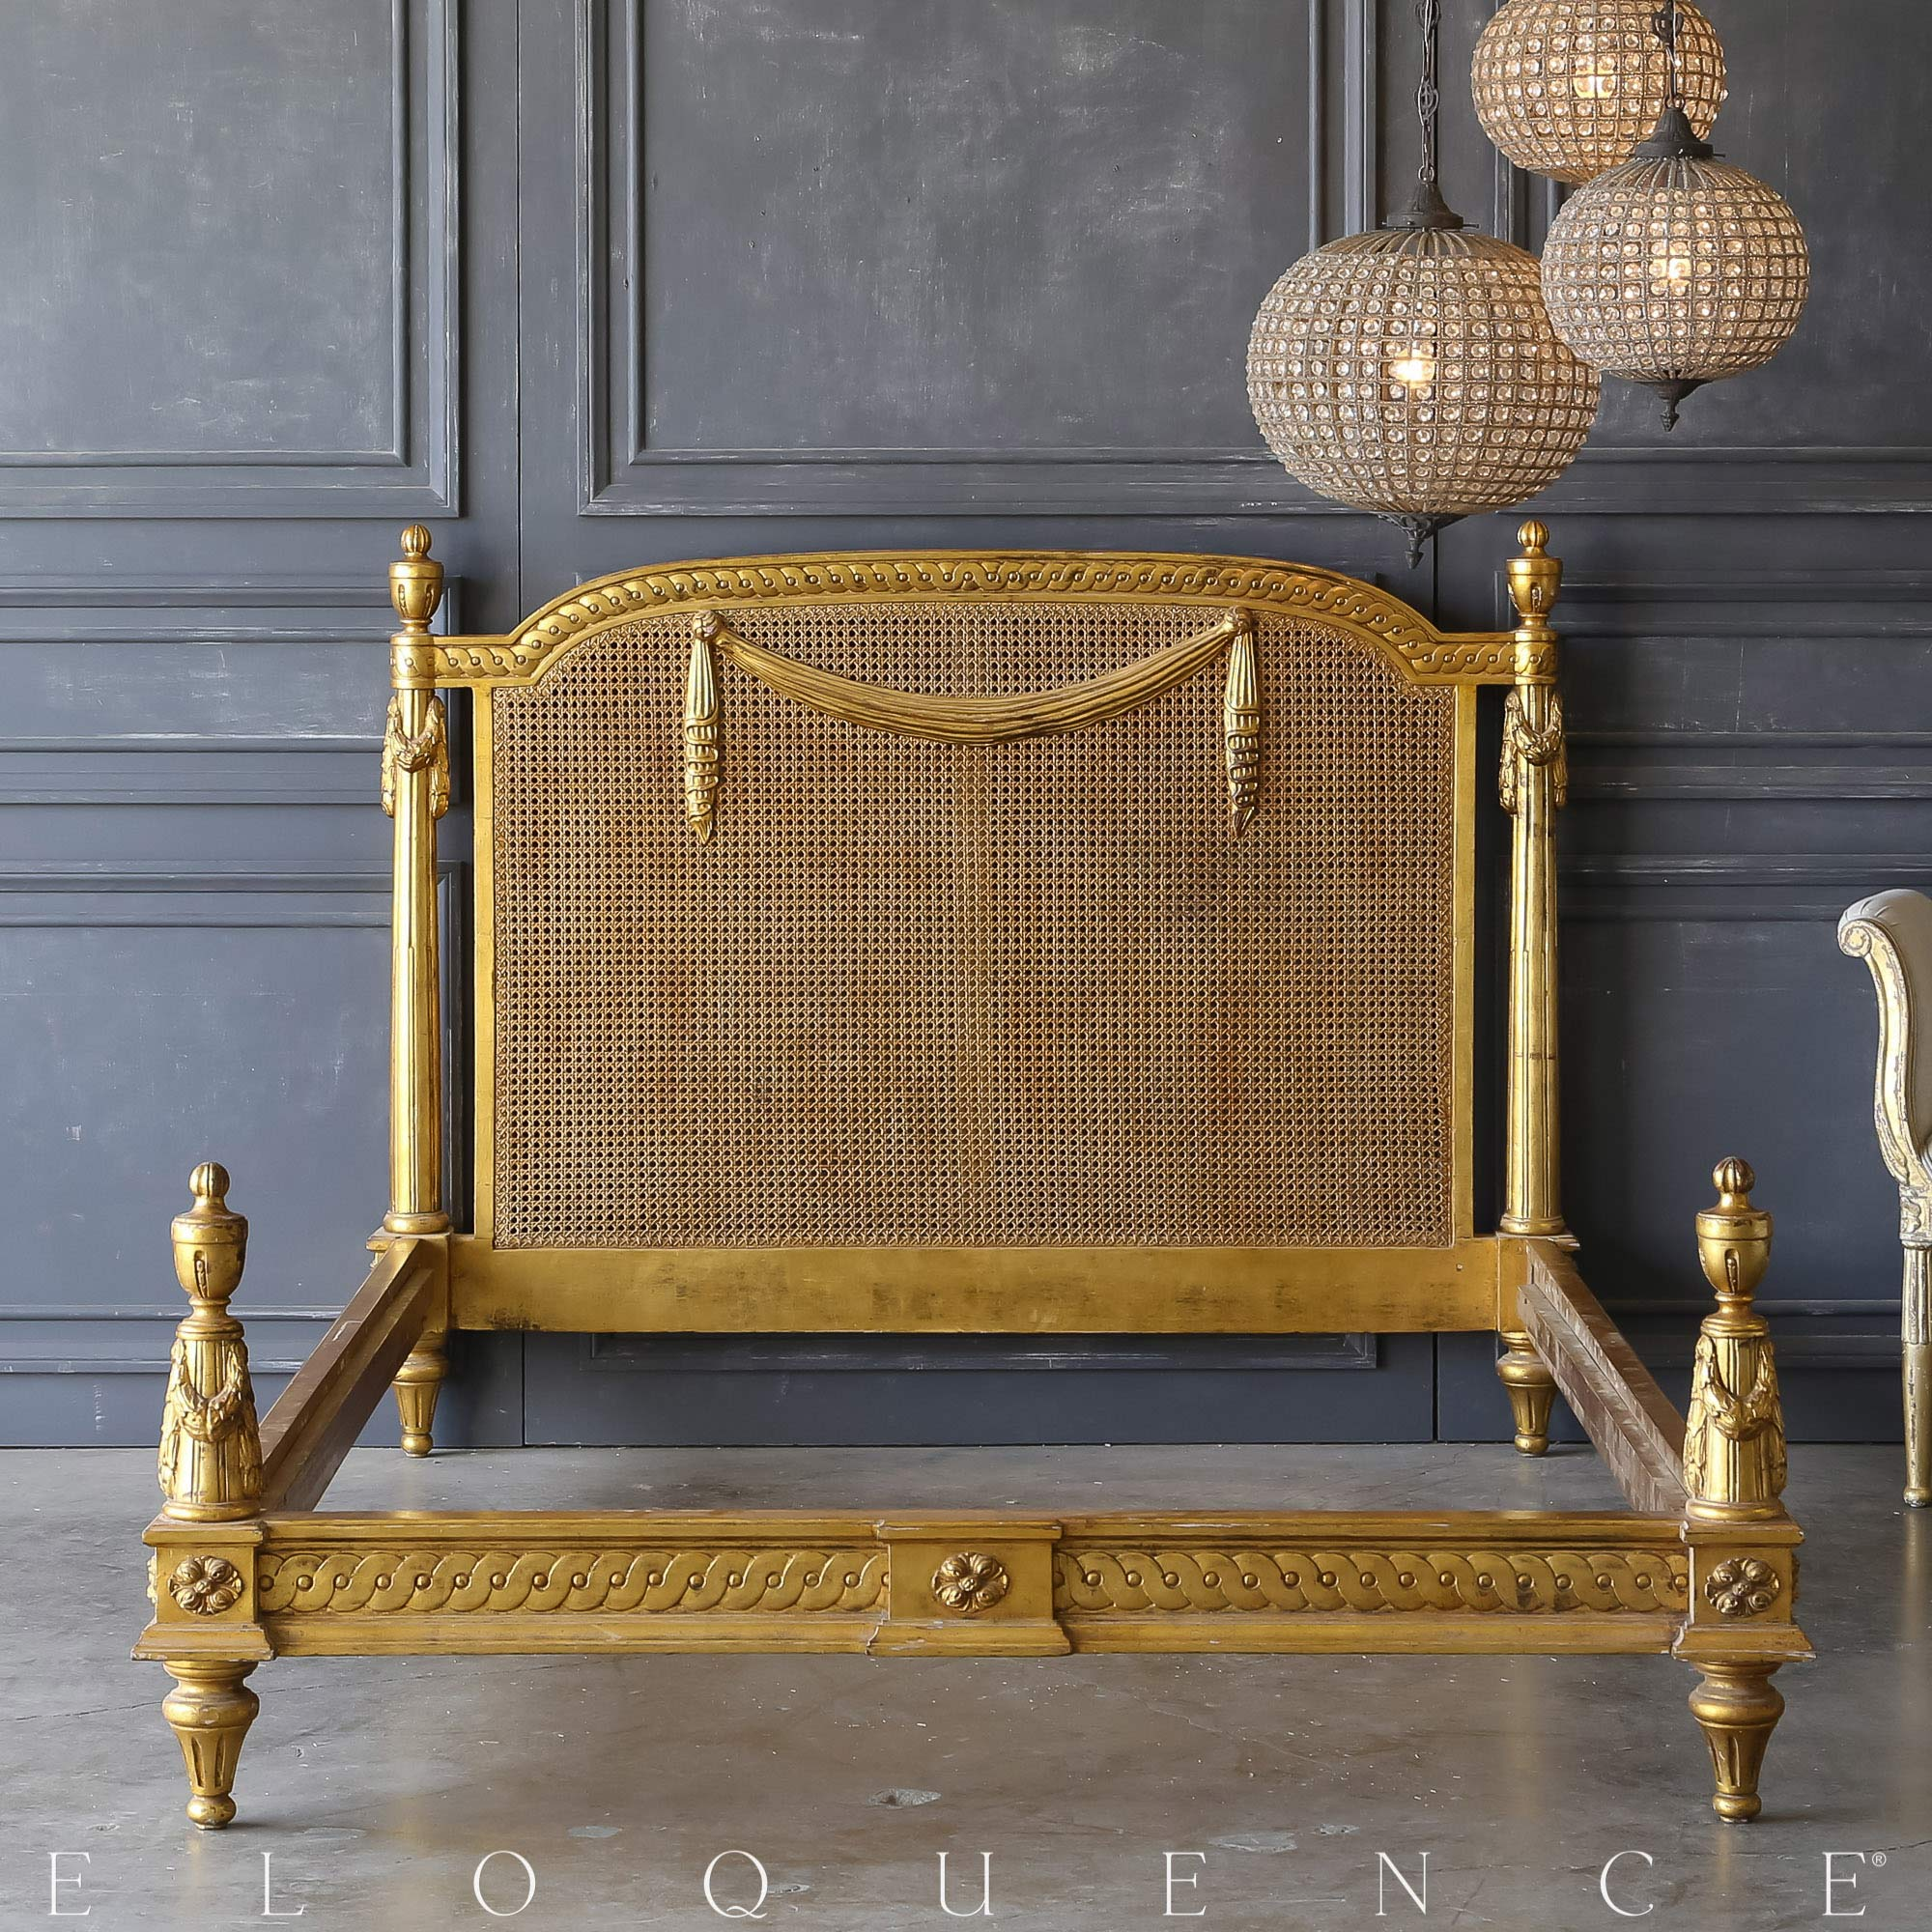 Eloquence® Vintage Gold Garland Cane Bed: 1940